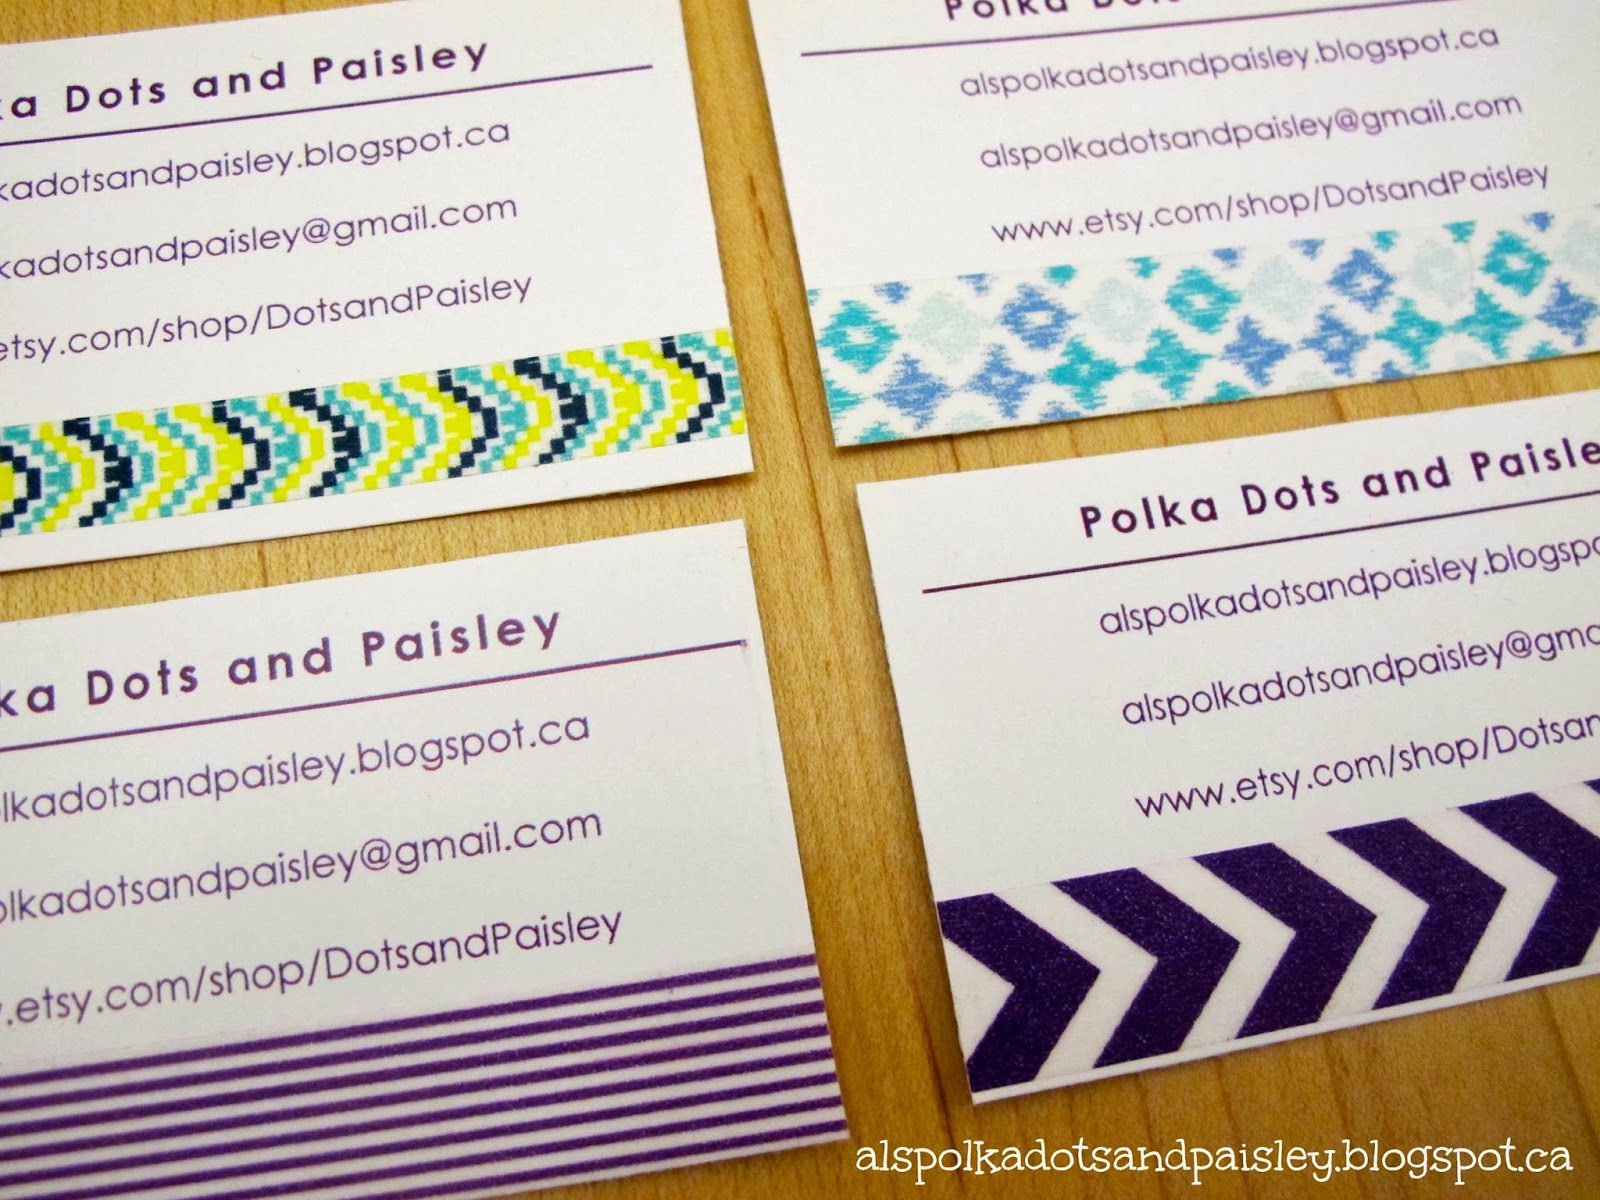 Polka Dots and Paisley Homemade Washi Tape Business Cards